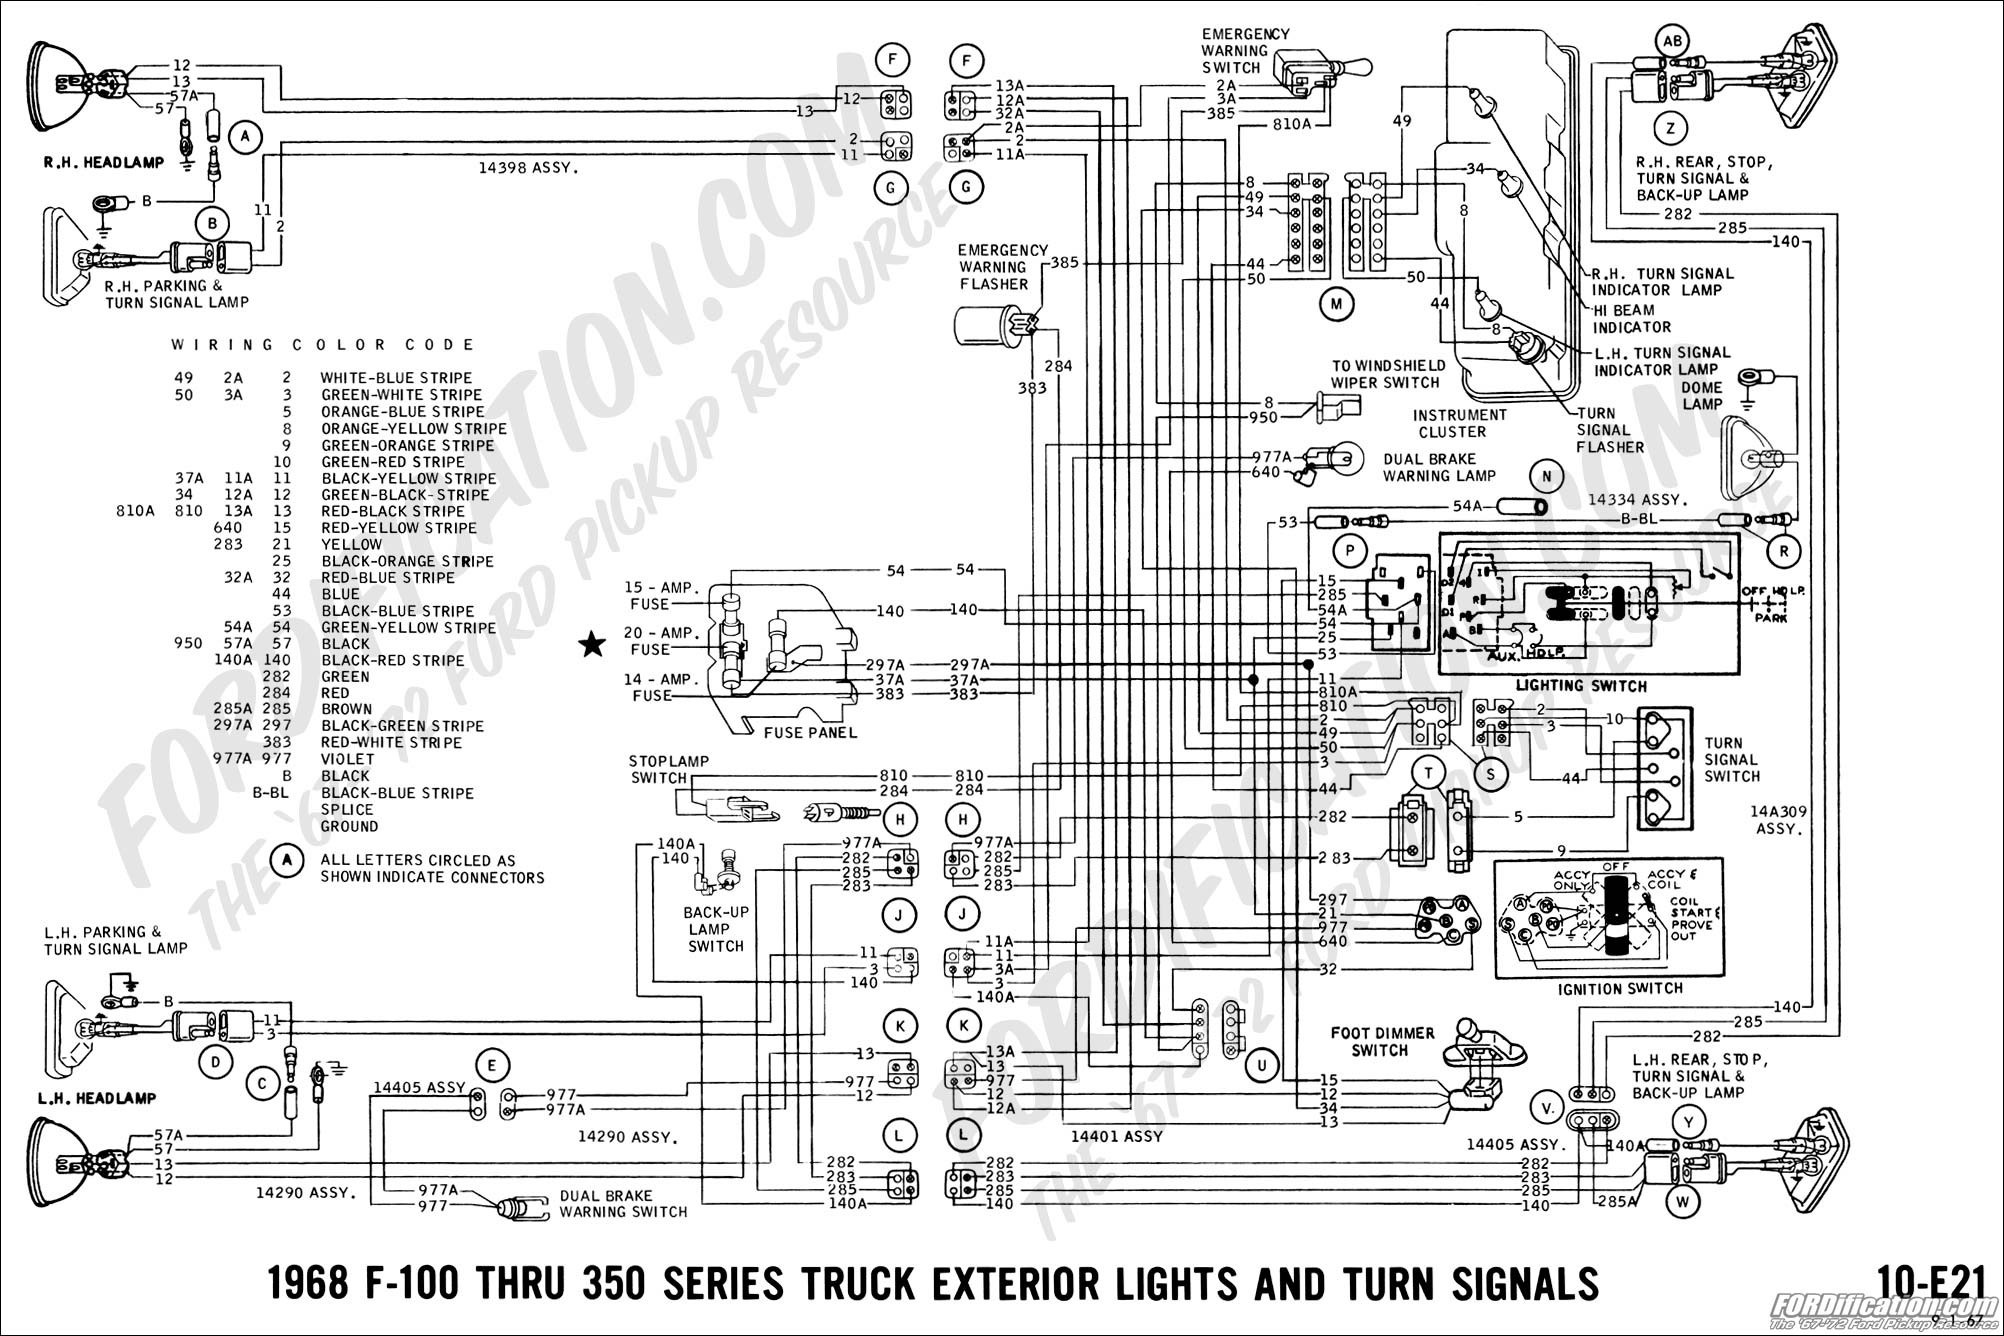 ... 1955 Chevy Generator Wiring Diagram Chevrolet Wiring Diagrams Of Turn  Signal Schematic. Related Post